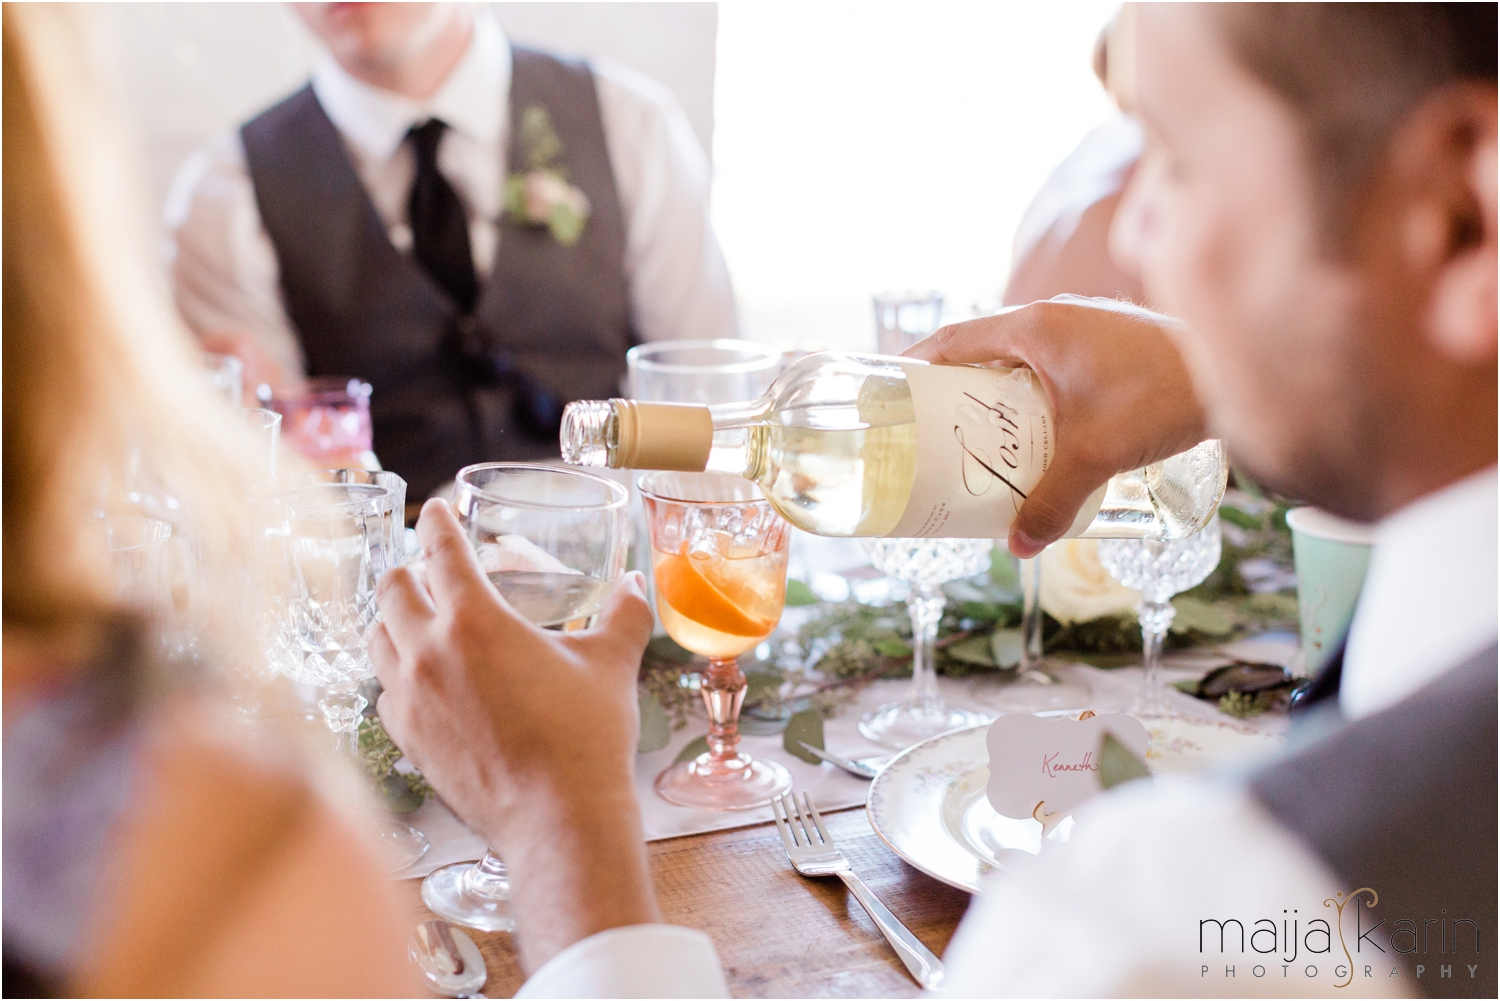 McCall-Idaho-Wedding-Maija-Karin-Photography_0065.jpg